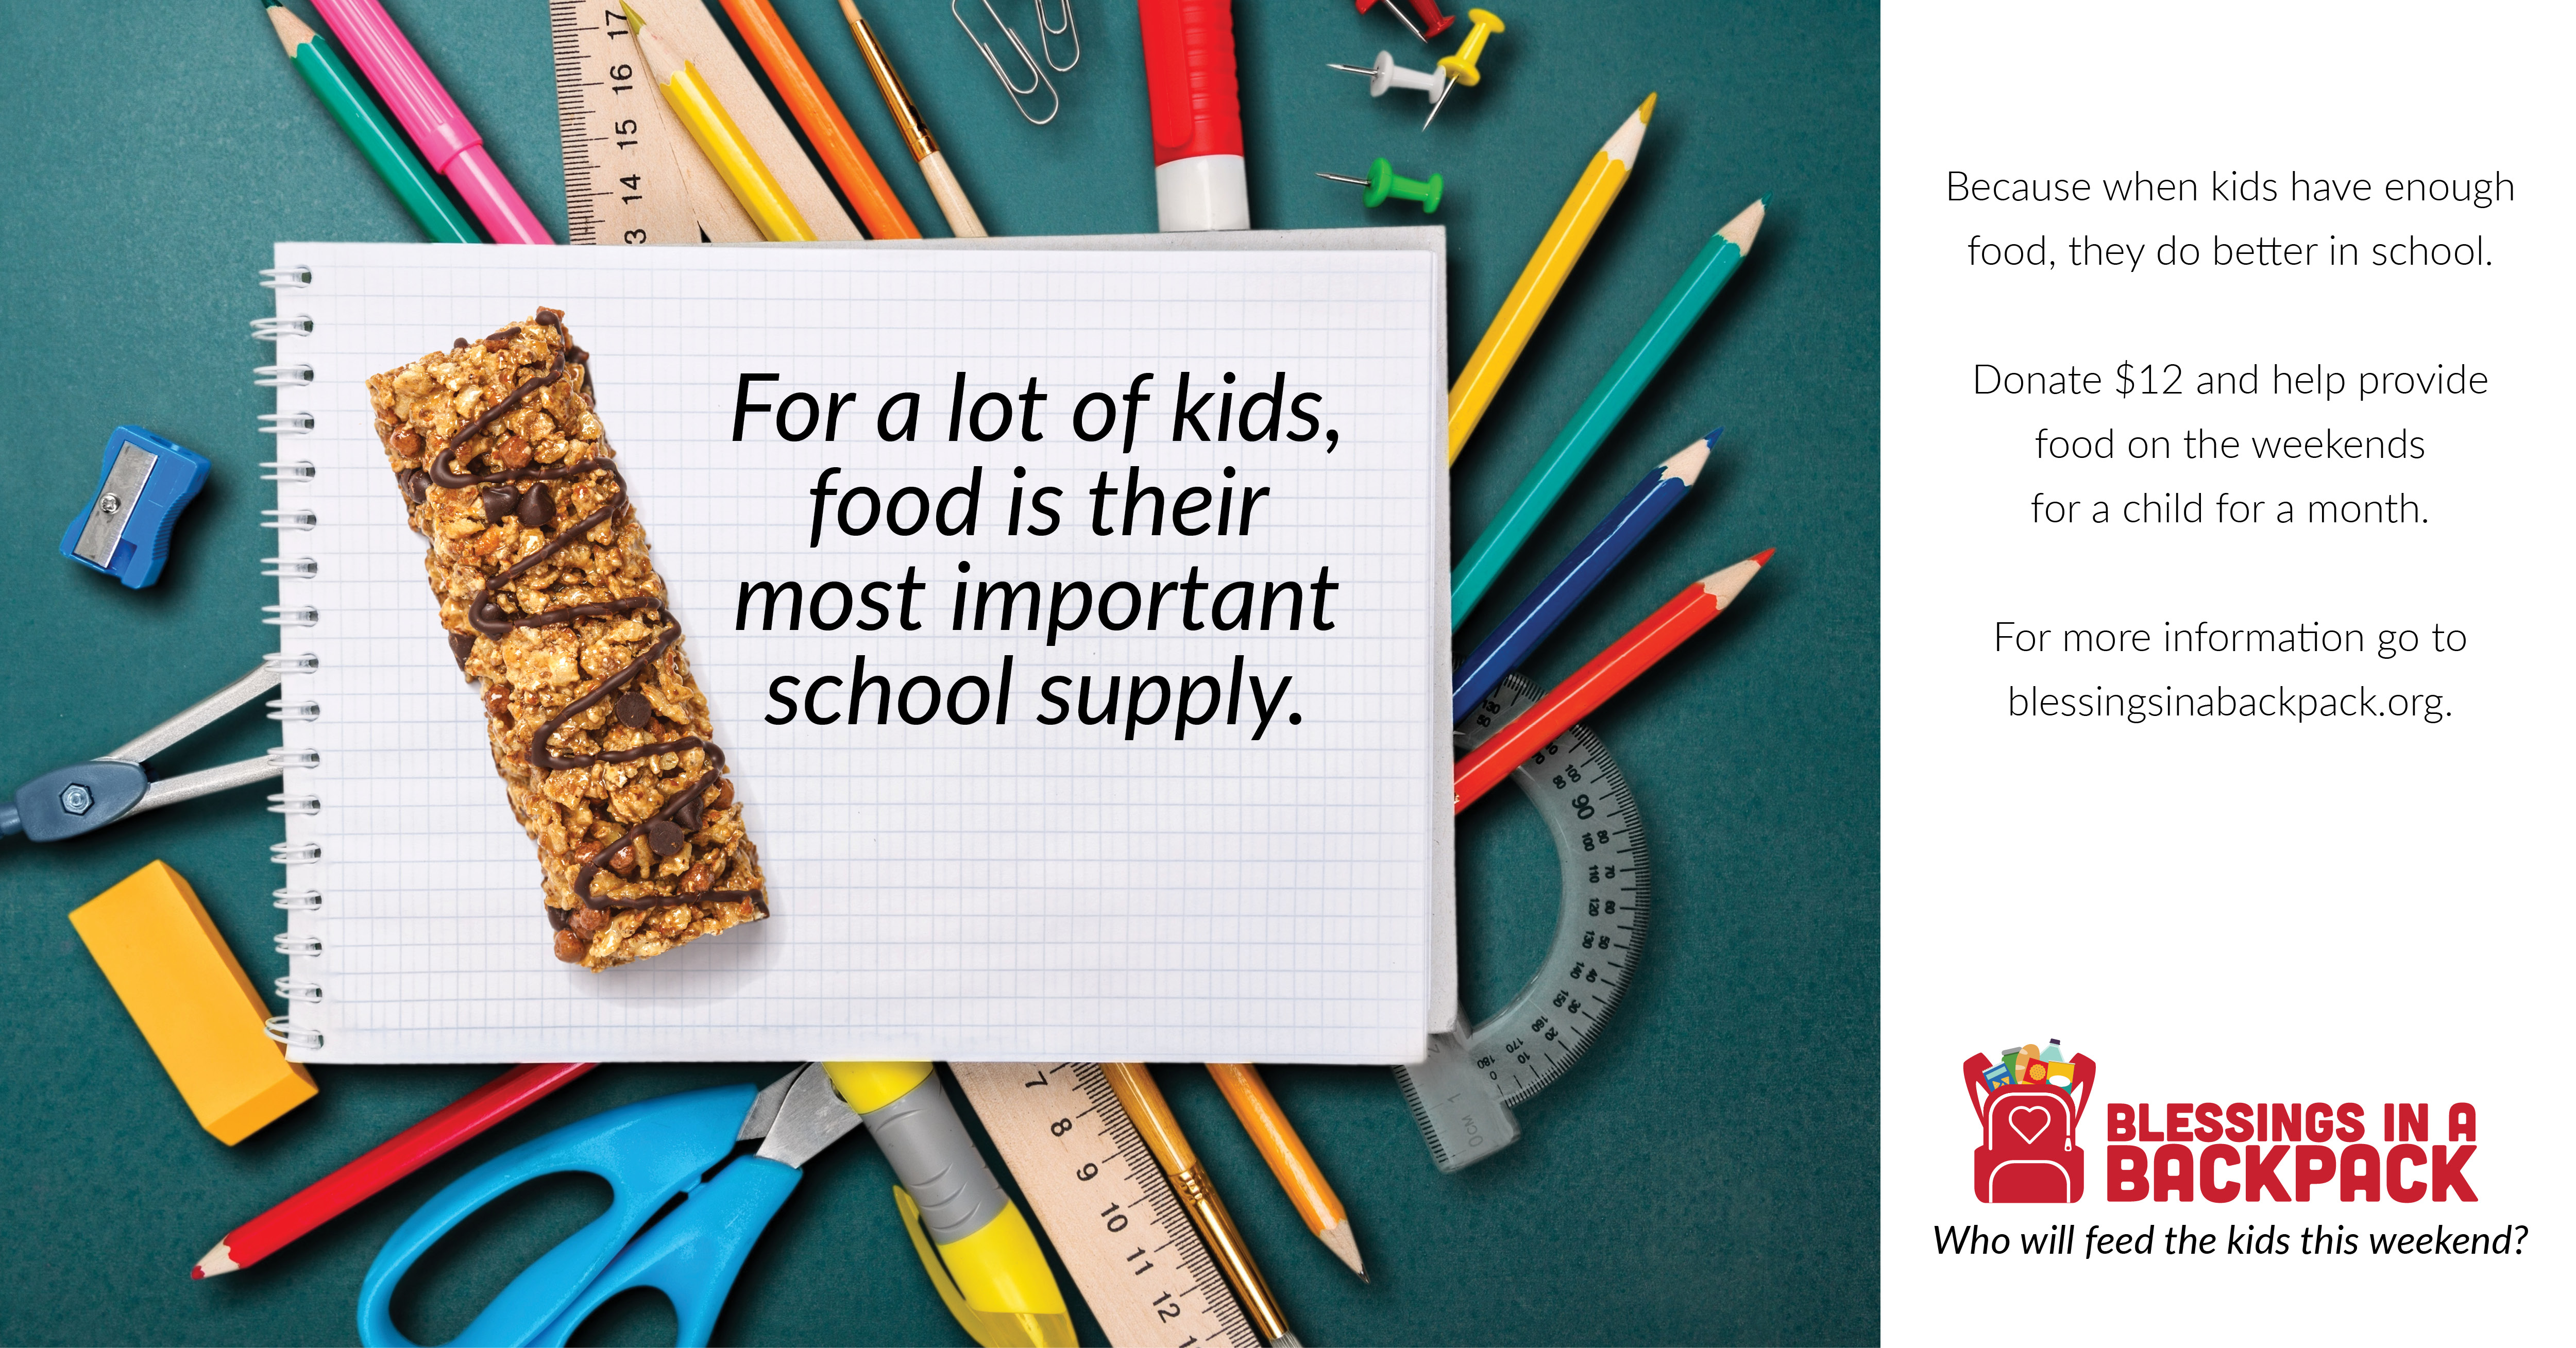 For a lot of kids food is the most important school supply